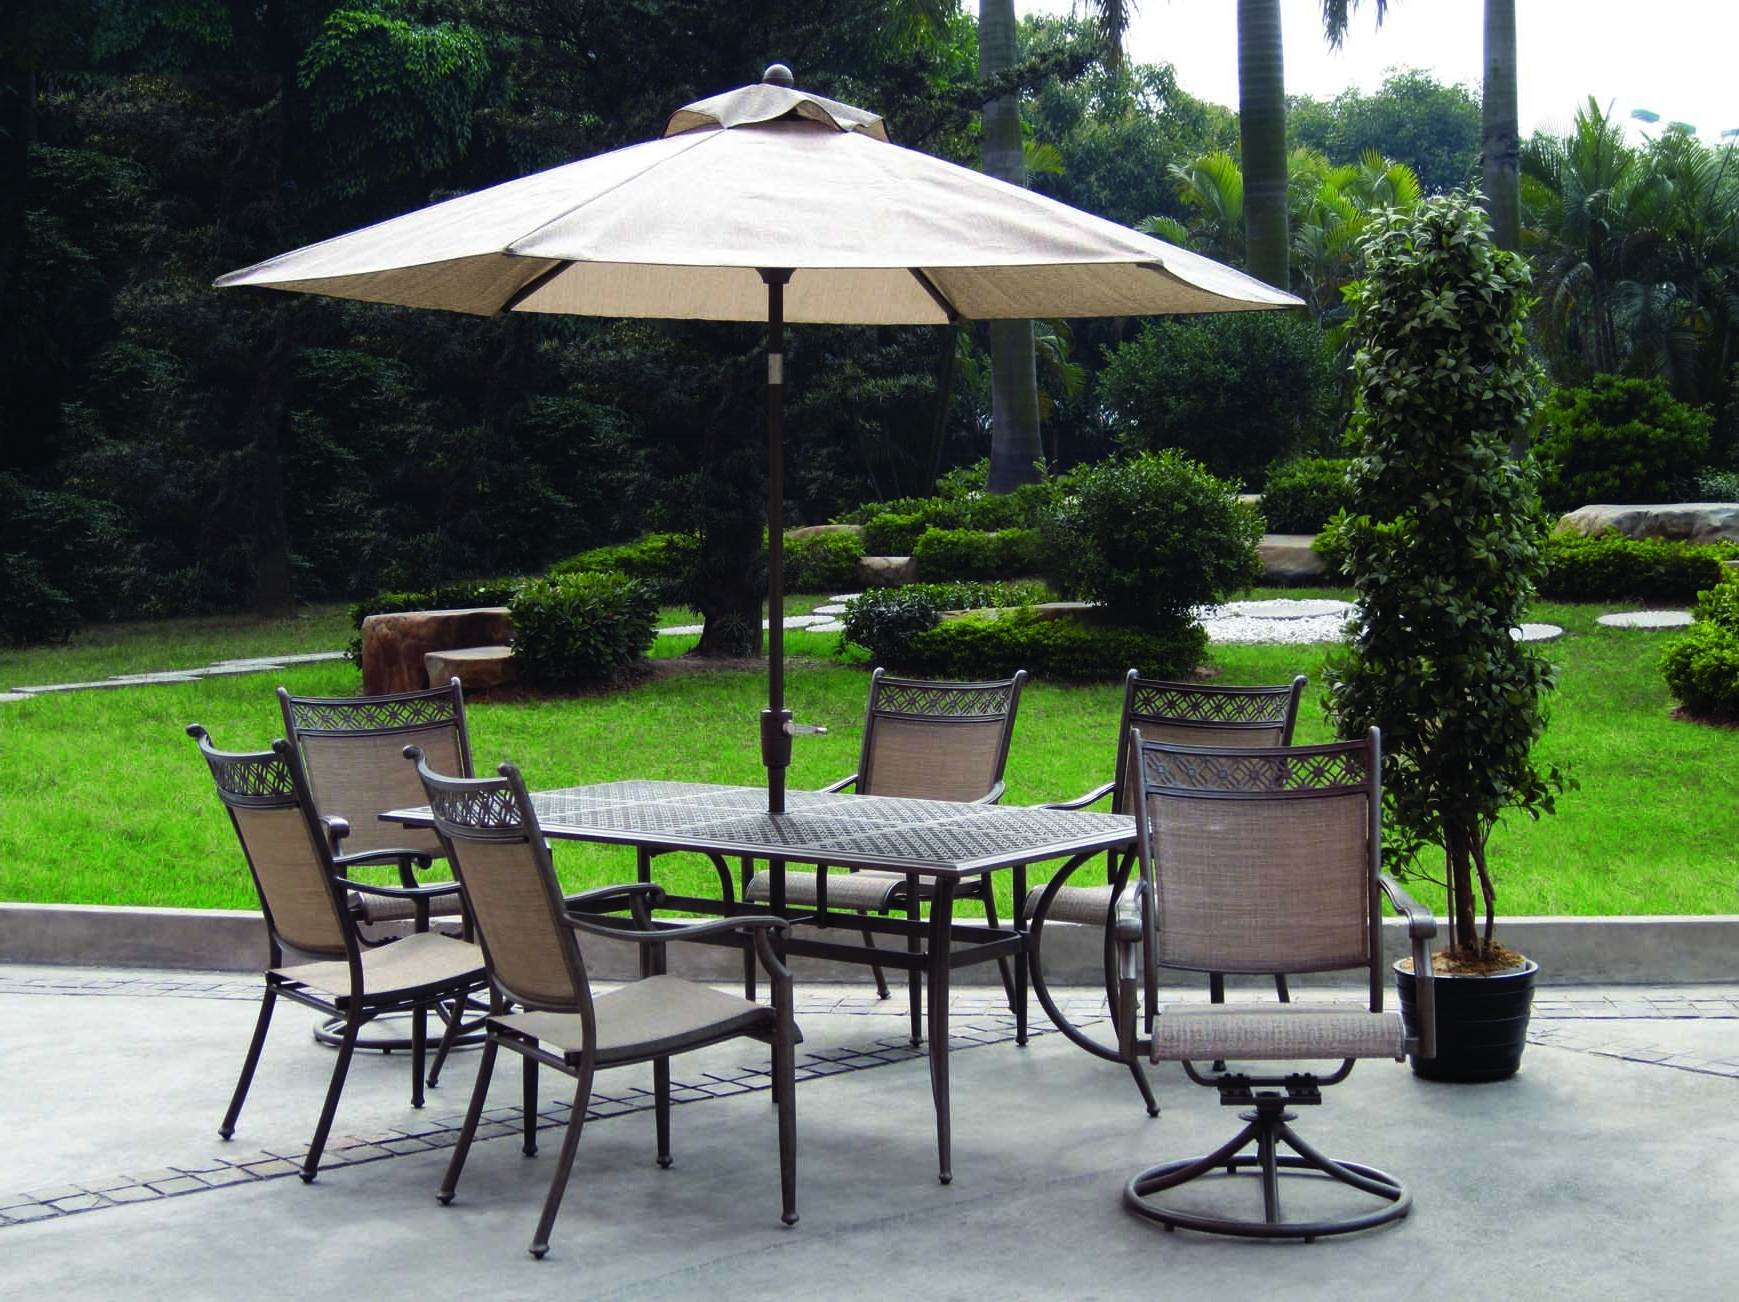 Home Depot Outdoor Furniture Umbrellas With 2 Swivel Chair Pine Intended For Fashionable Patio Furniture With Umbrellas (Gallery 9 of 20)